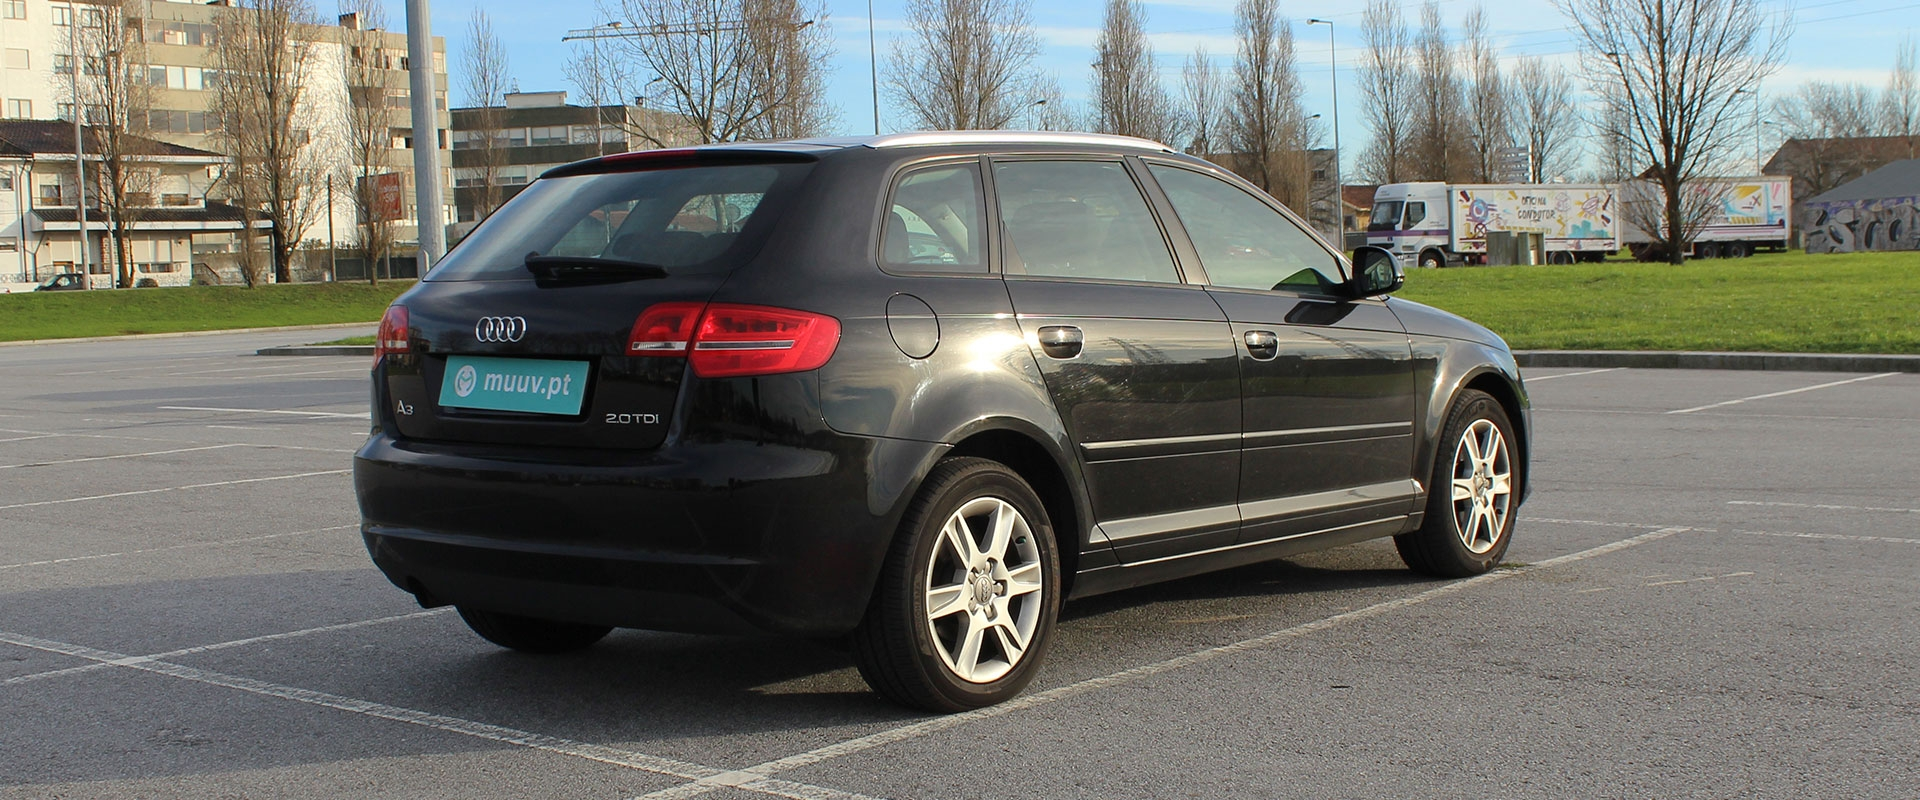 Audi A3 Sportback 2.0 TDi Attraction